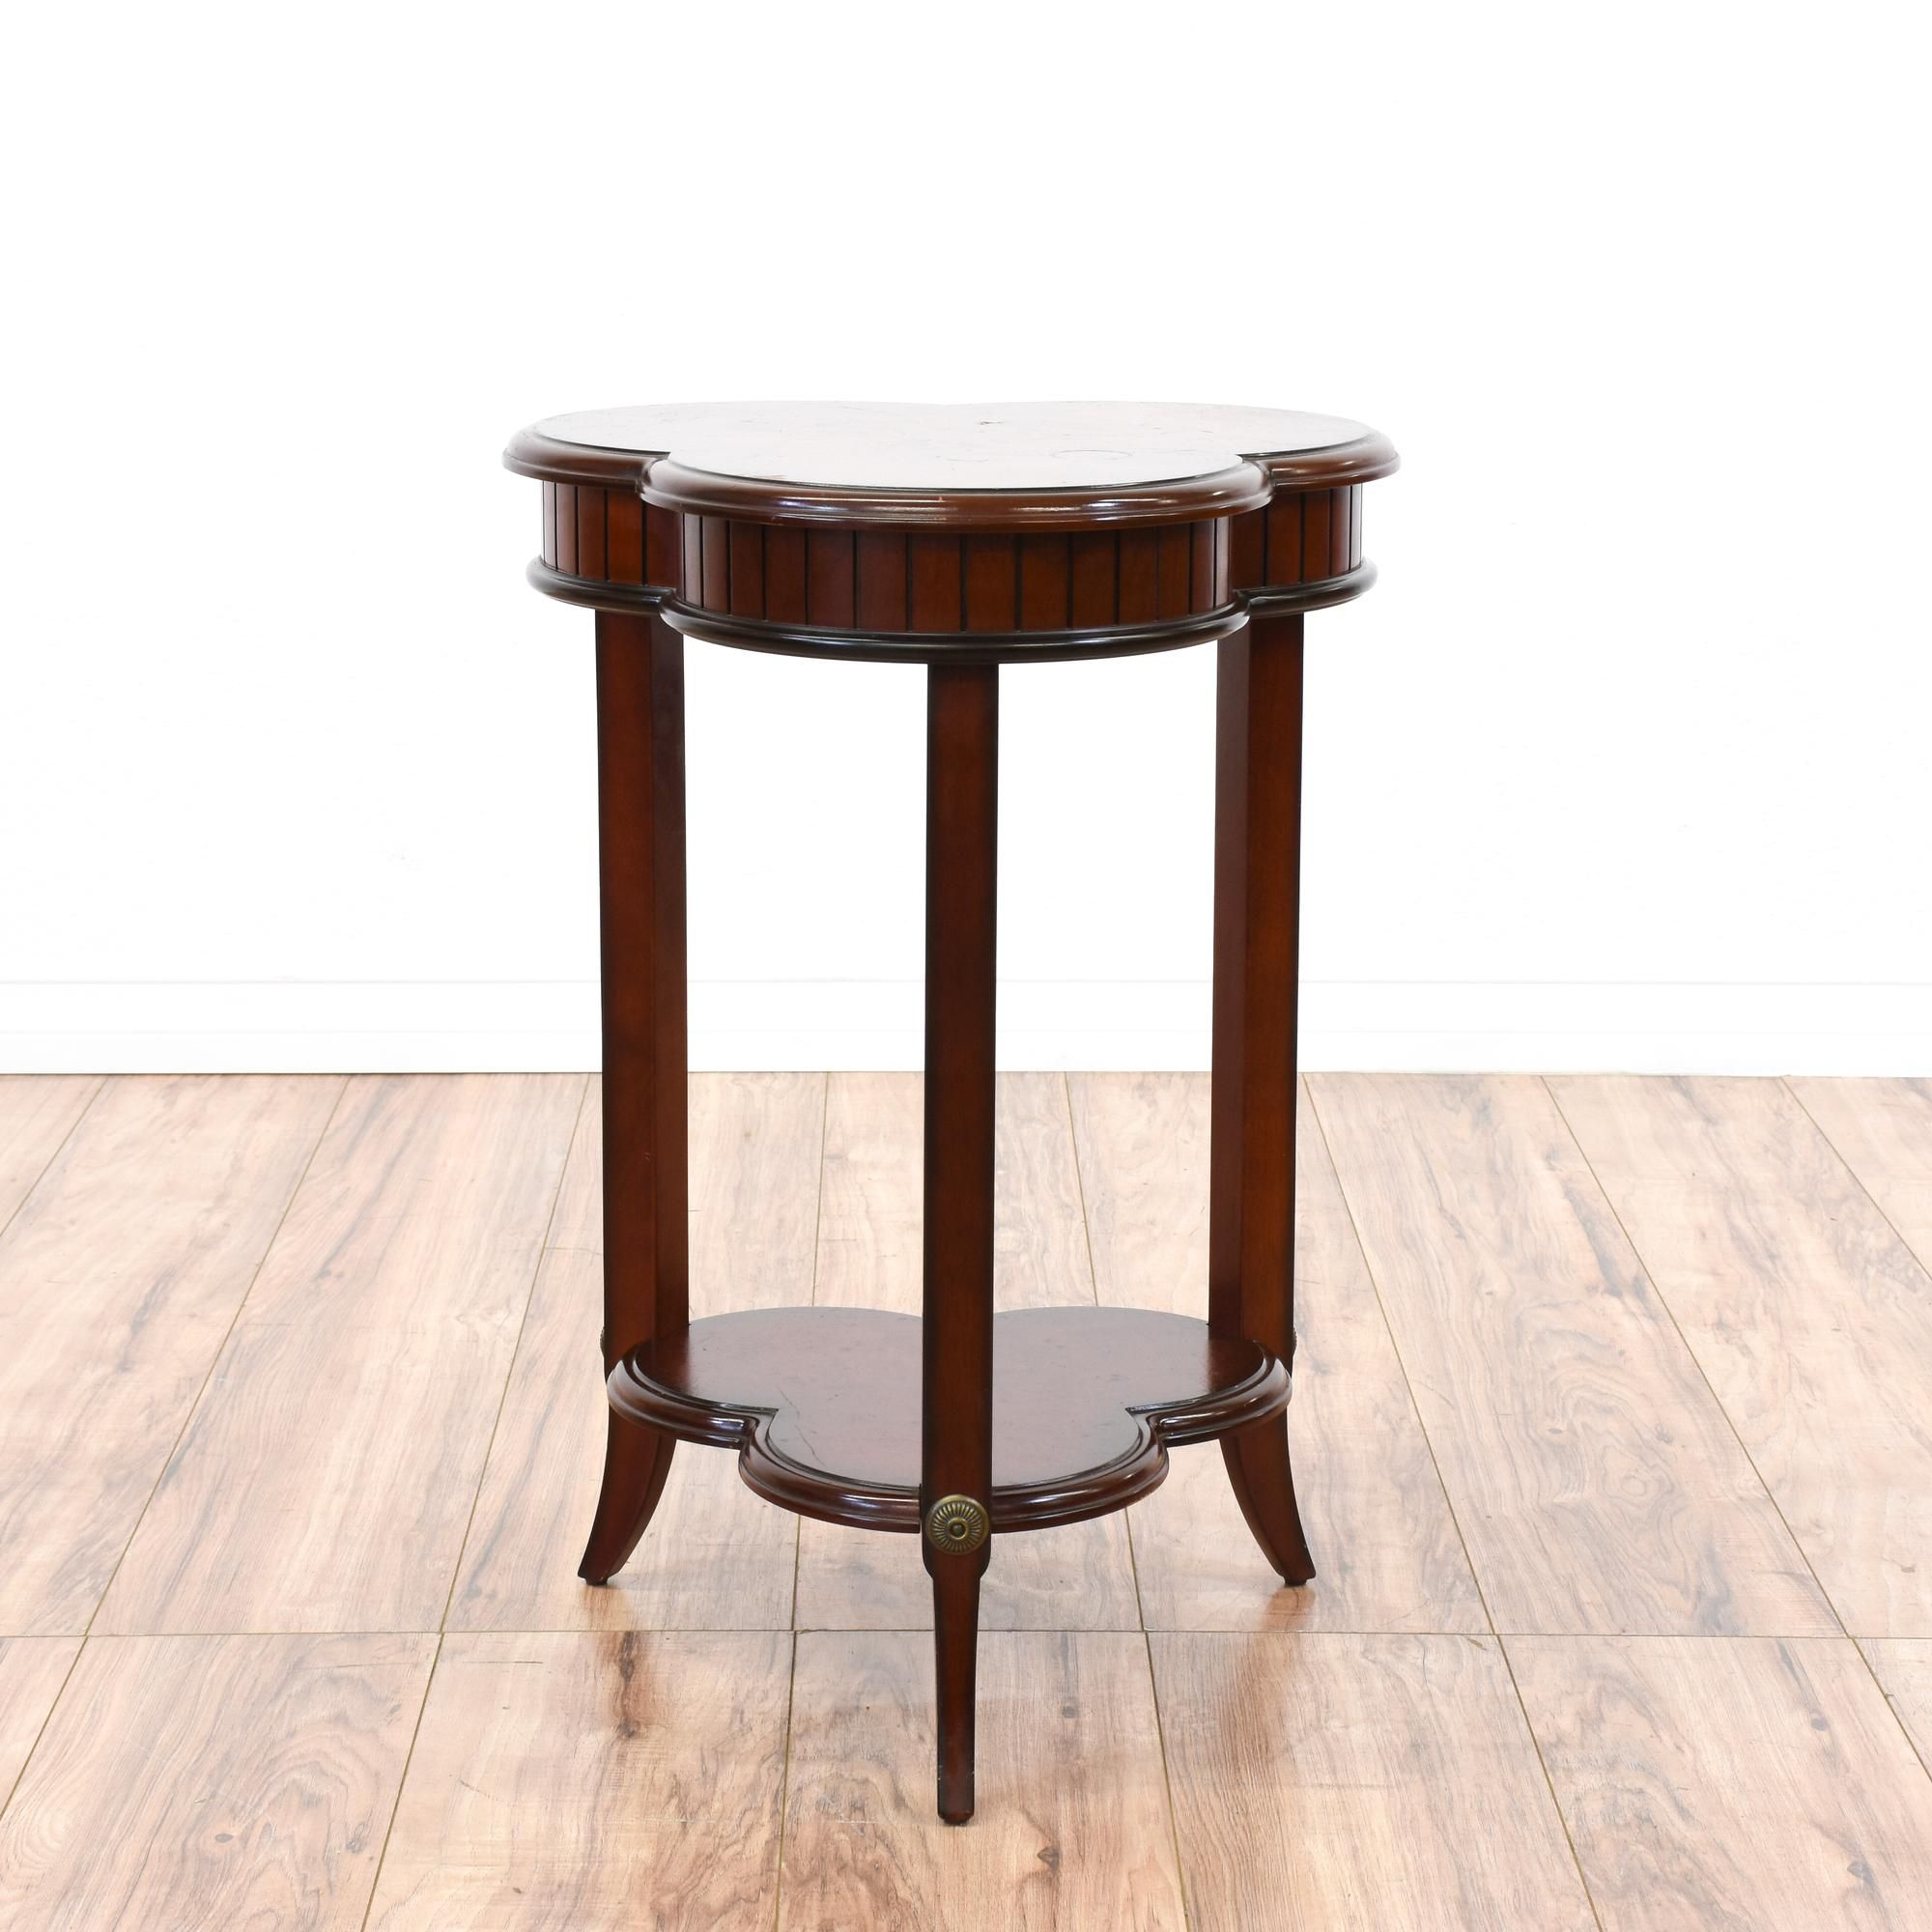 Furniture Legs San Diego burl wood 3 leaf clover tiered end table | leaf clover, furniture